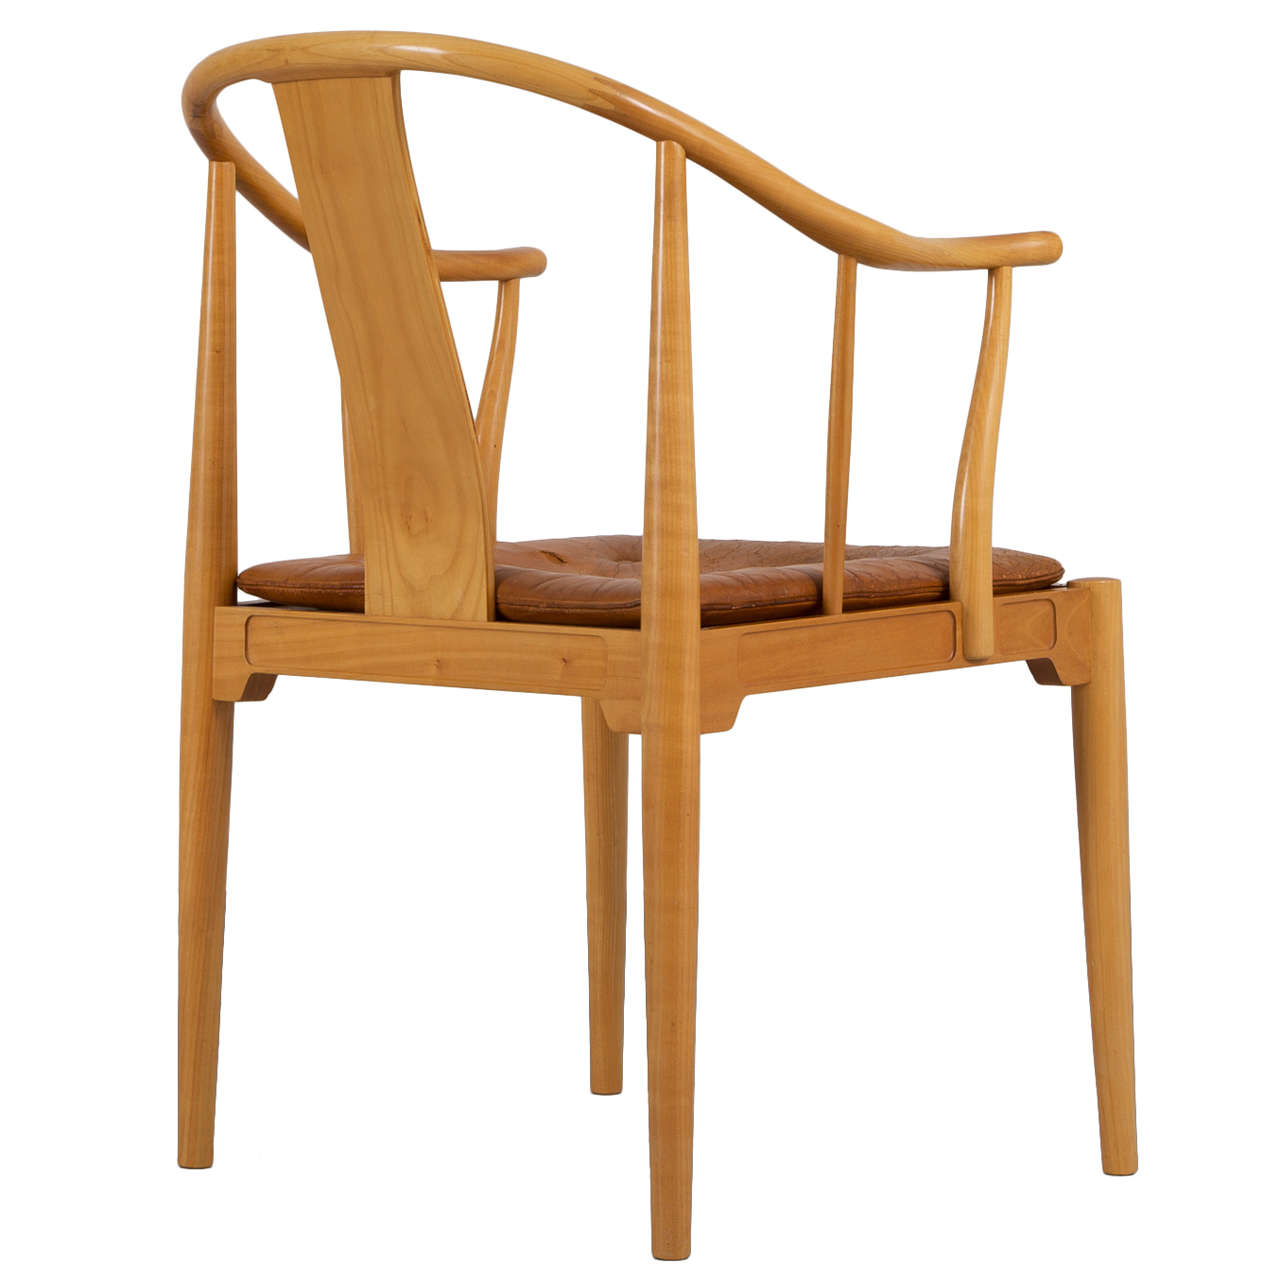 Wonderful Early China Chair By Hans Wegner For Fritz Hansen For Sale